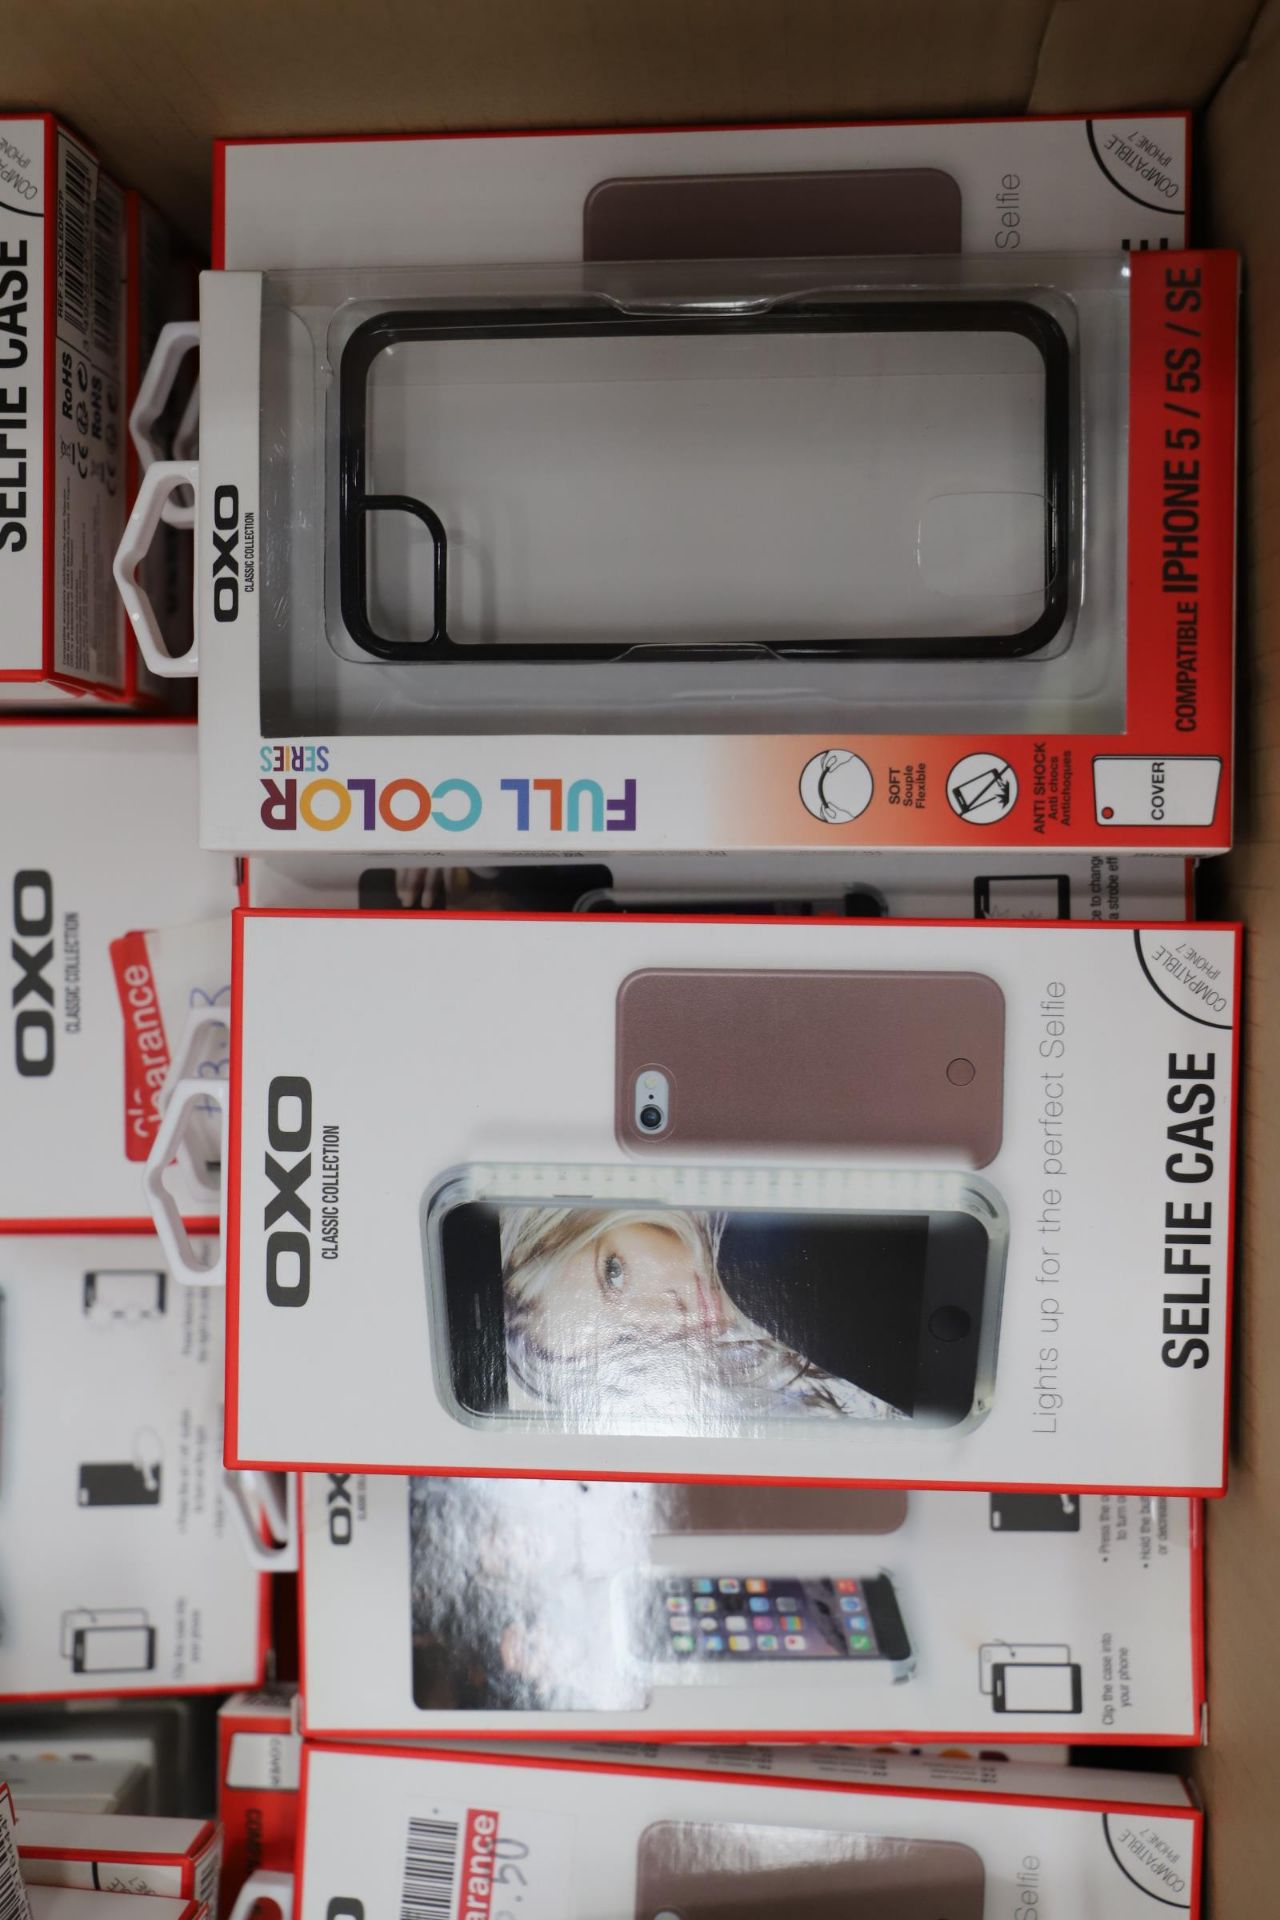 Lot 12 - *No Reserve* Mixed Lot 121 items - Iphone Accessories. RRP £2025.27